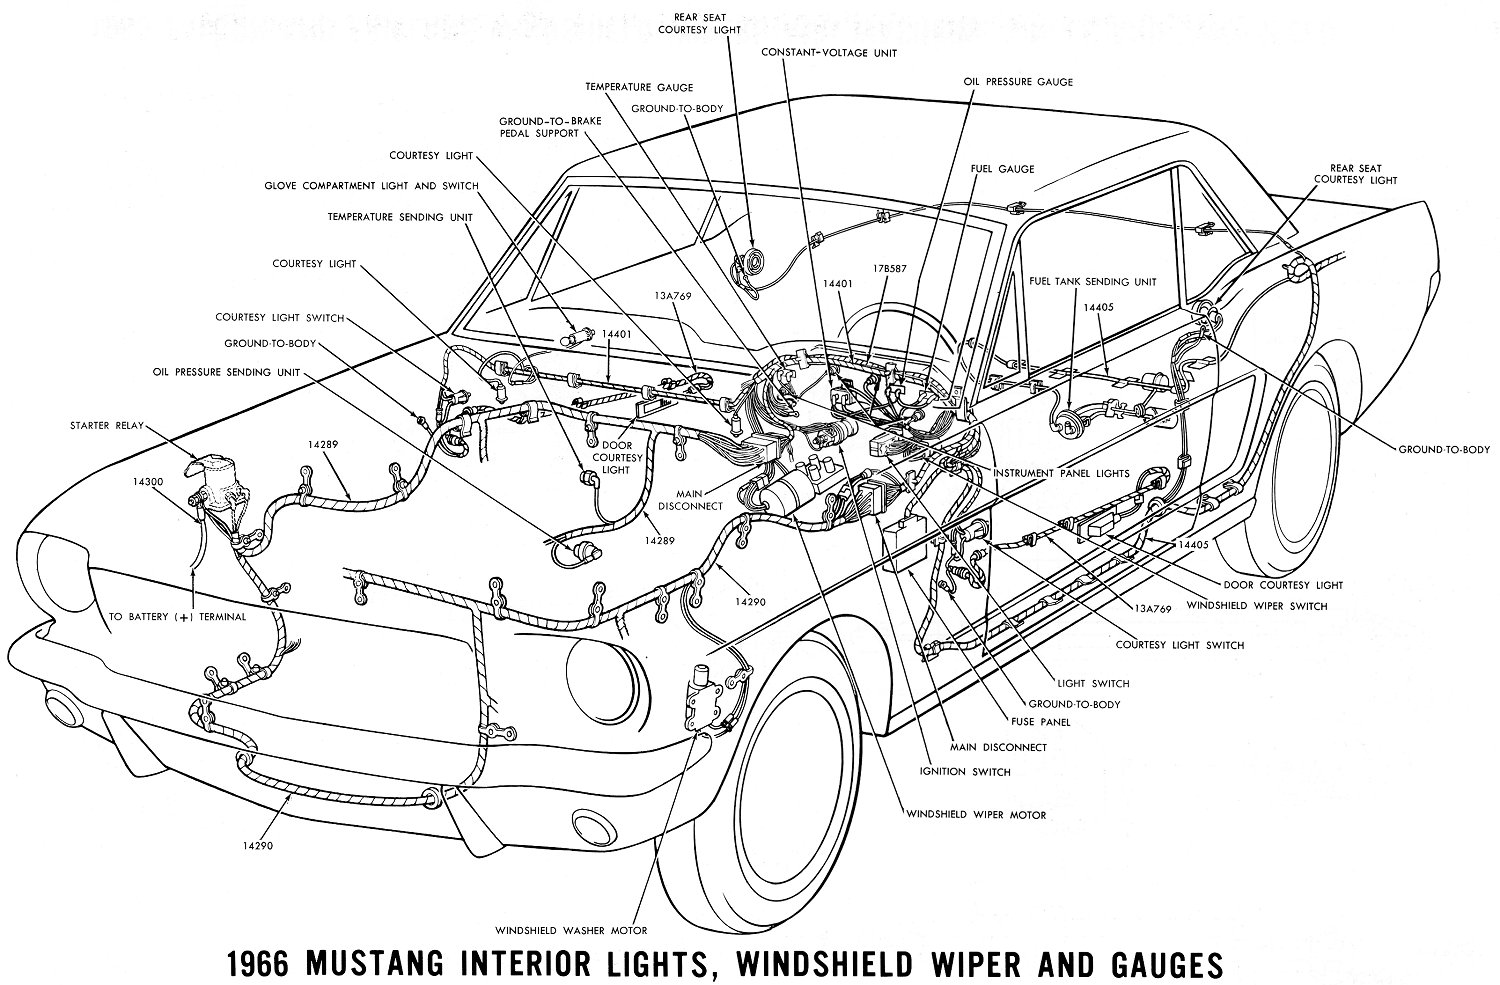 1966 Mustang Wiring Diagrams Average Joe Restoration 1967 Electrical Diagram Interior Lights Windshield Wiper And Gauges Schematic